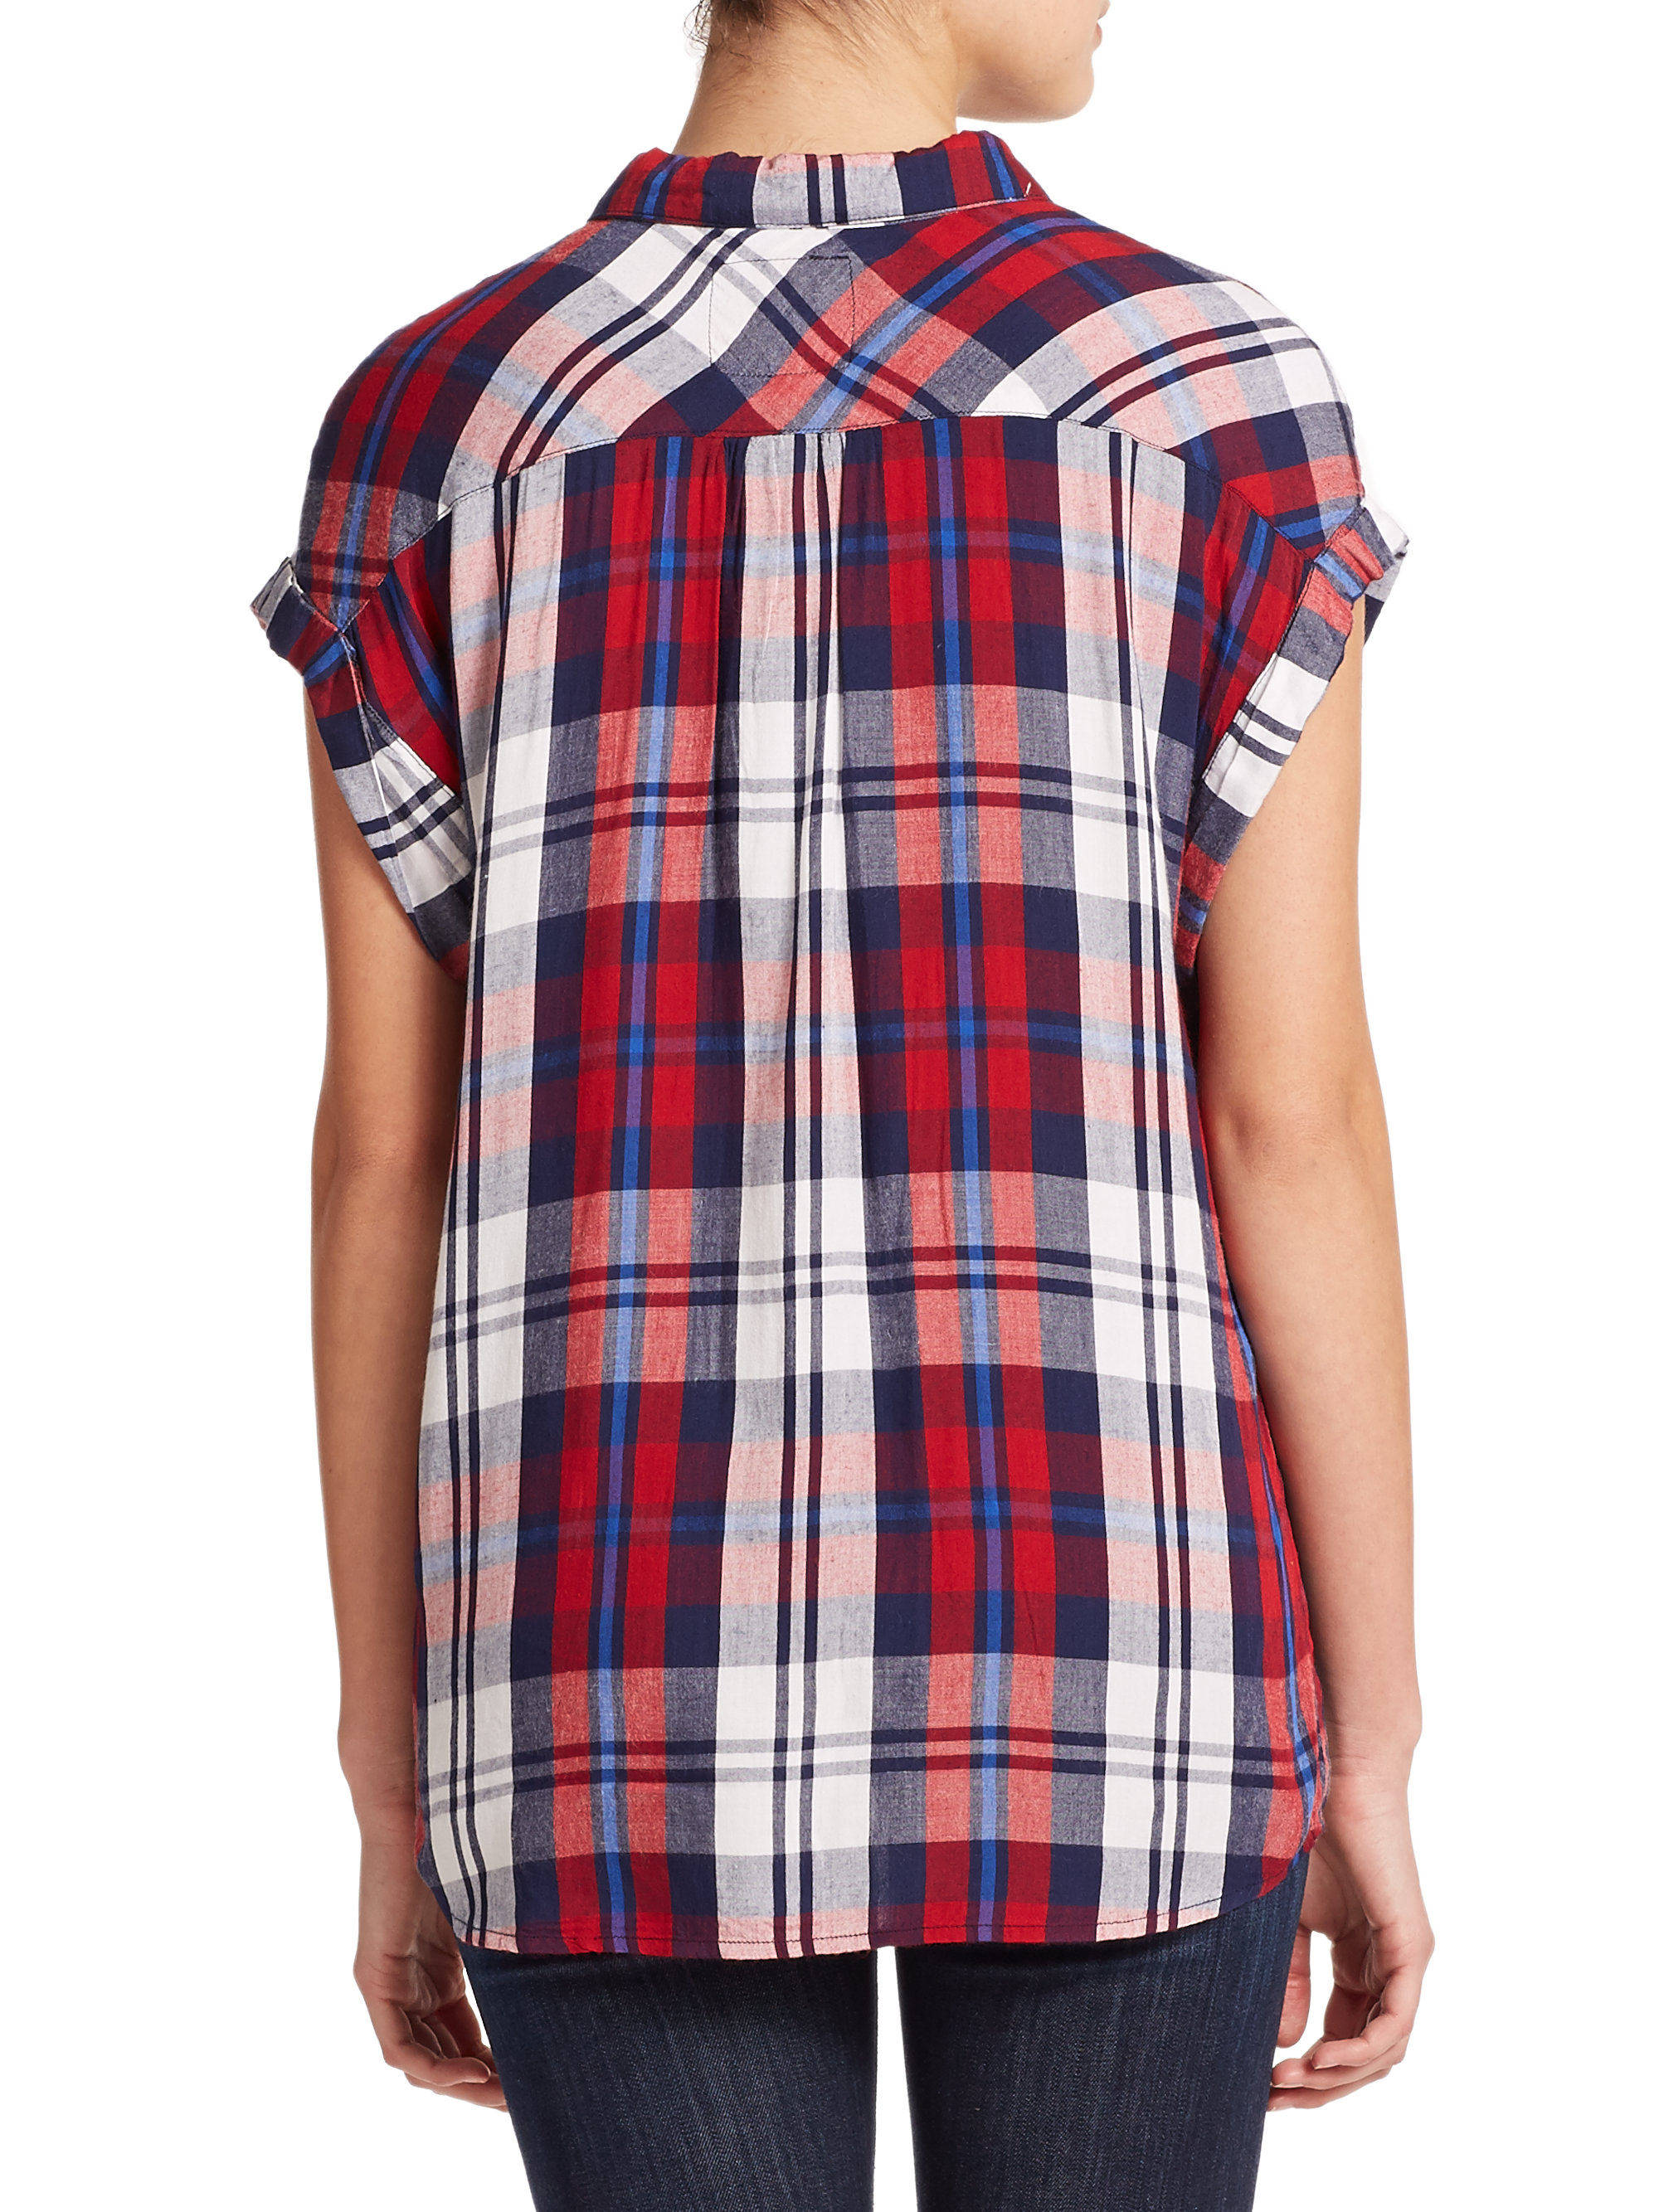 Rails britt short sleeve plaid shirt in red cherry navy Short sleeve plaid shirts